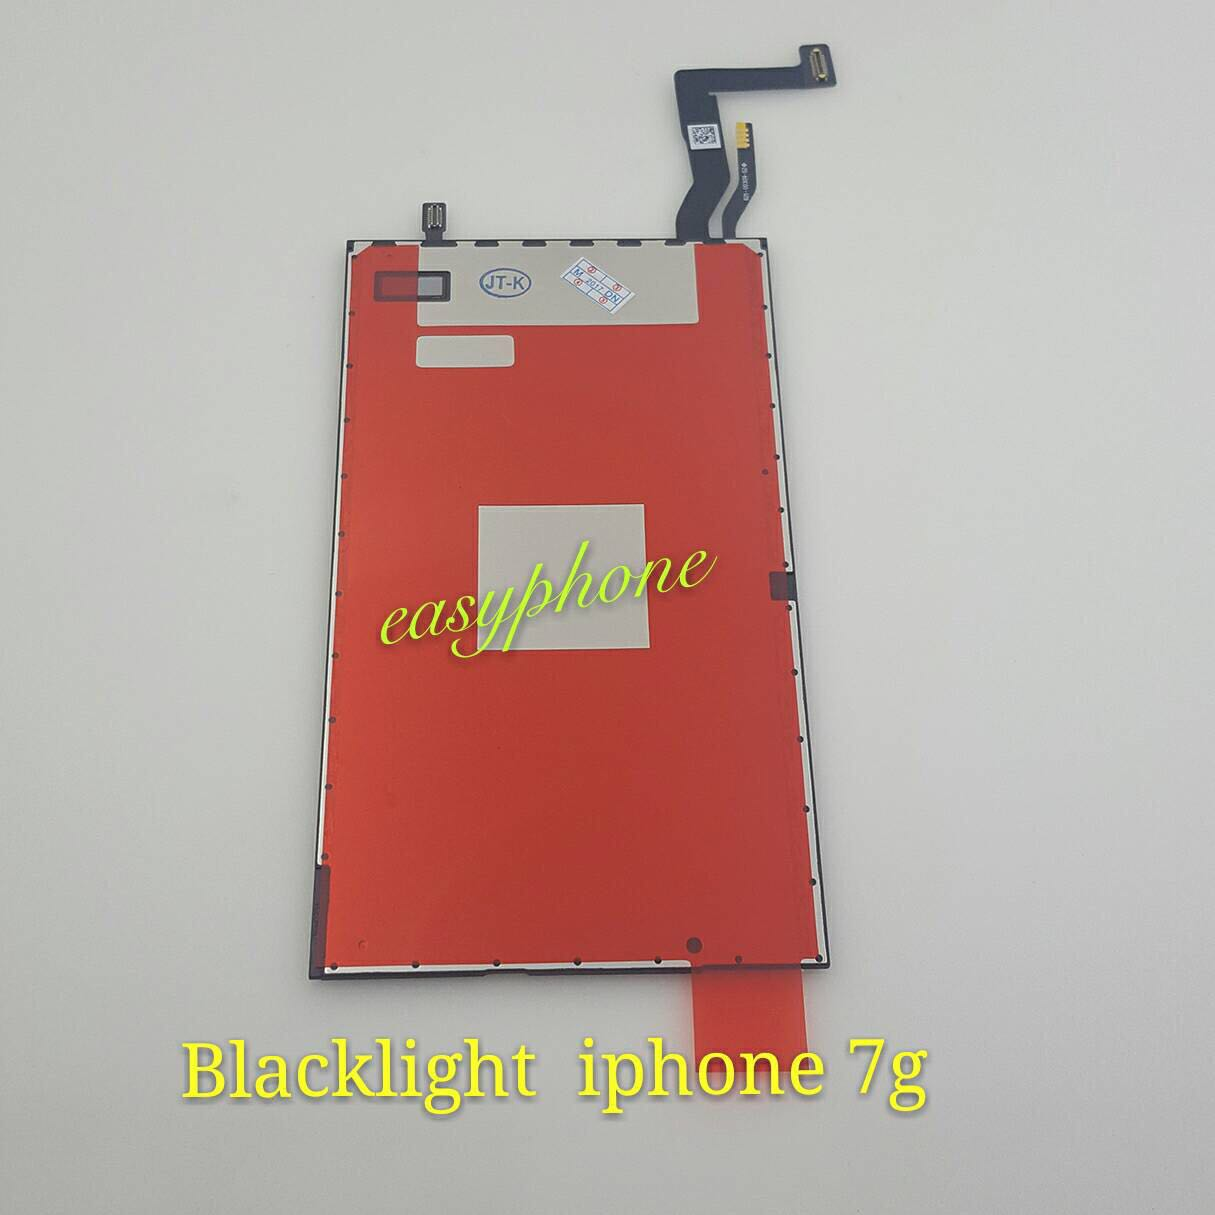 แผงไฟ Back Light iPhone 7g